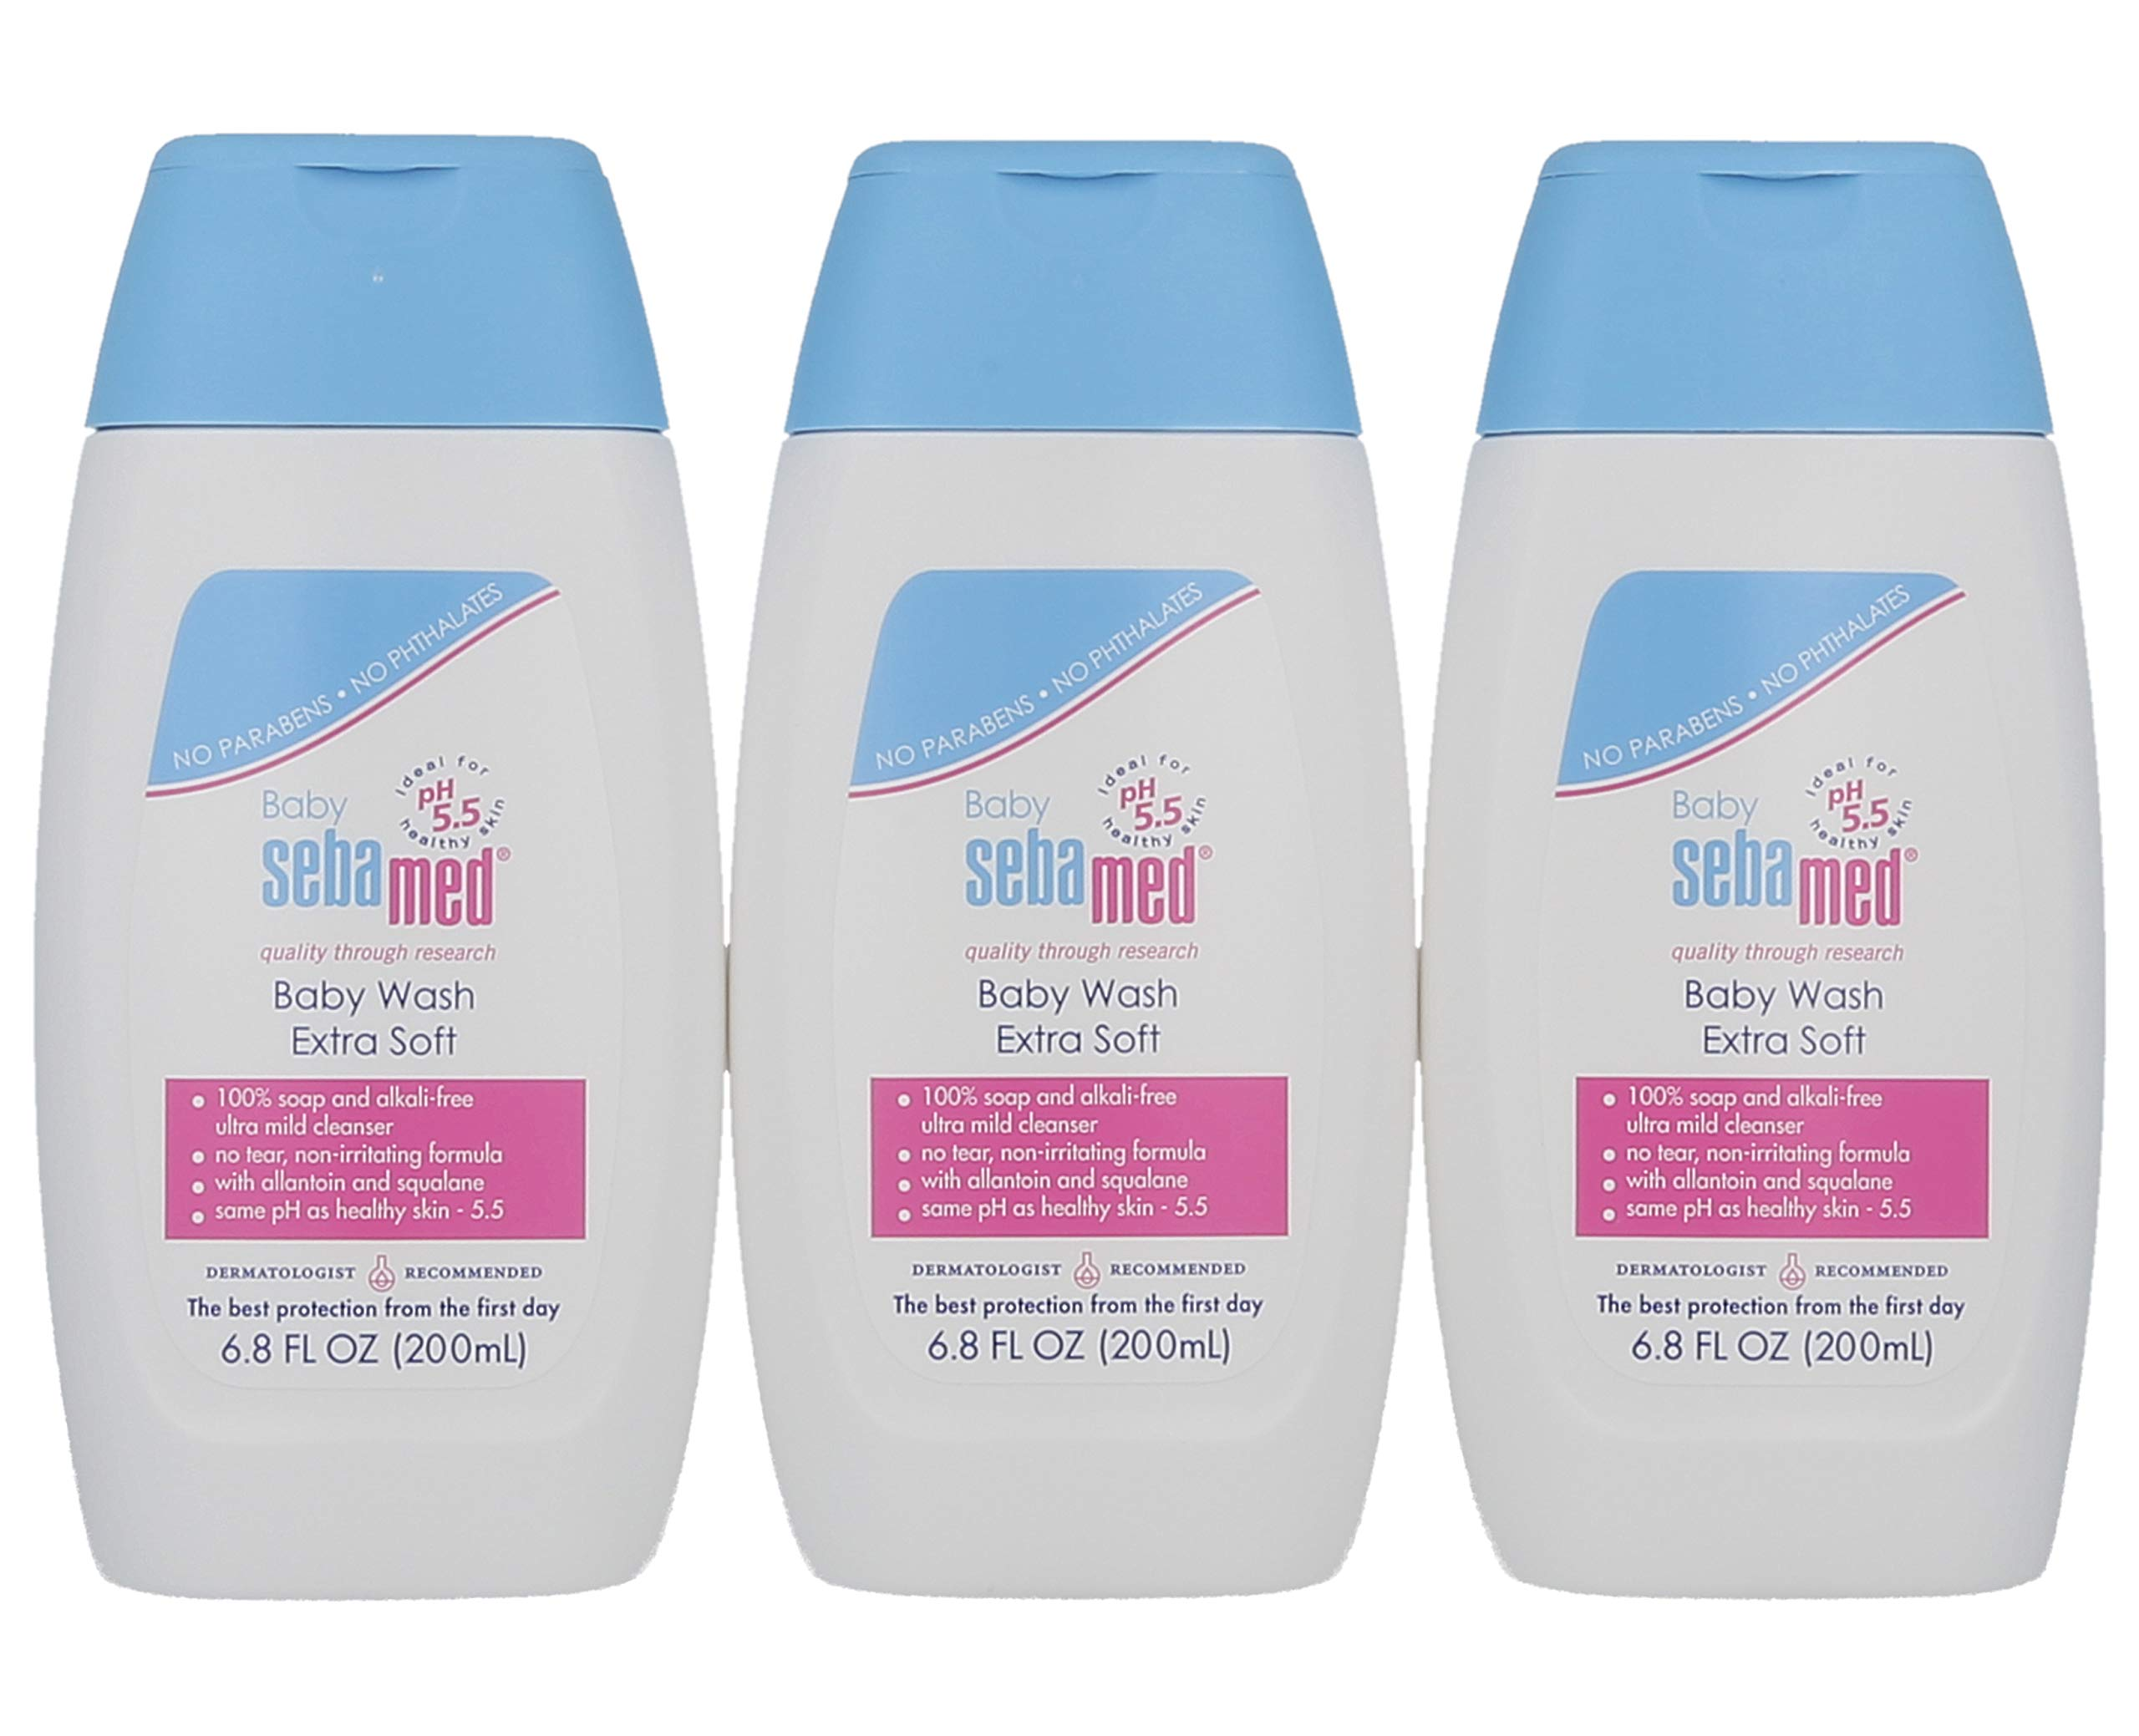 Sebamed Baby Wash Extra Soft Dermatologist Recommended Ultra Mild Moisturizer 6.8 Fluid Ounces (200 Milliliters) Pack of 3 by SEBAMED